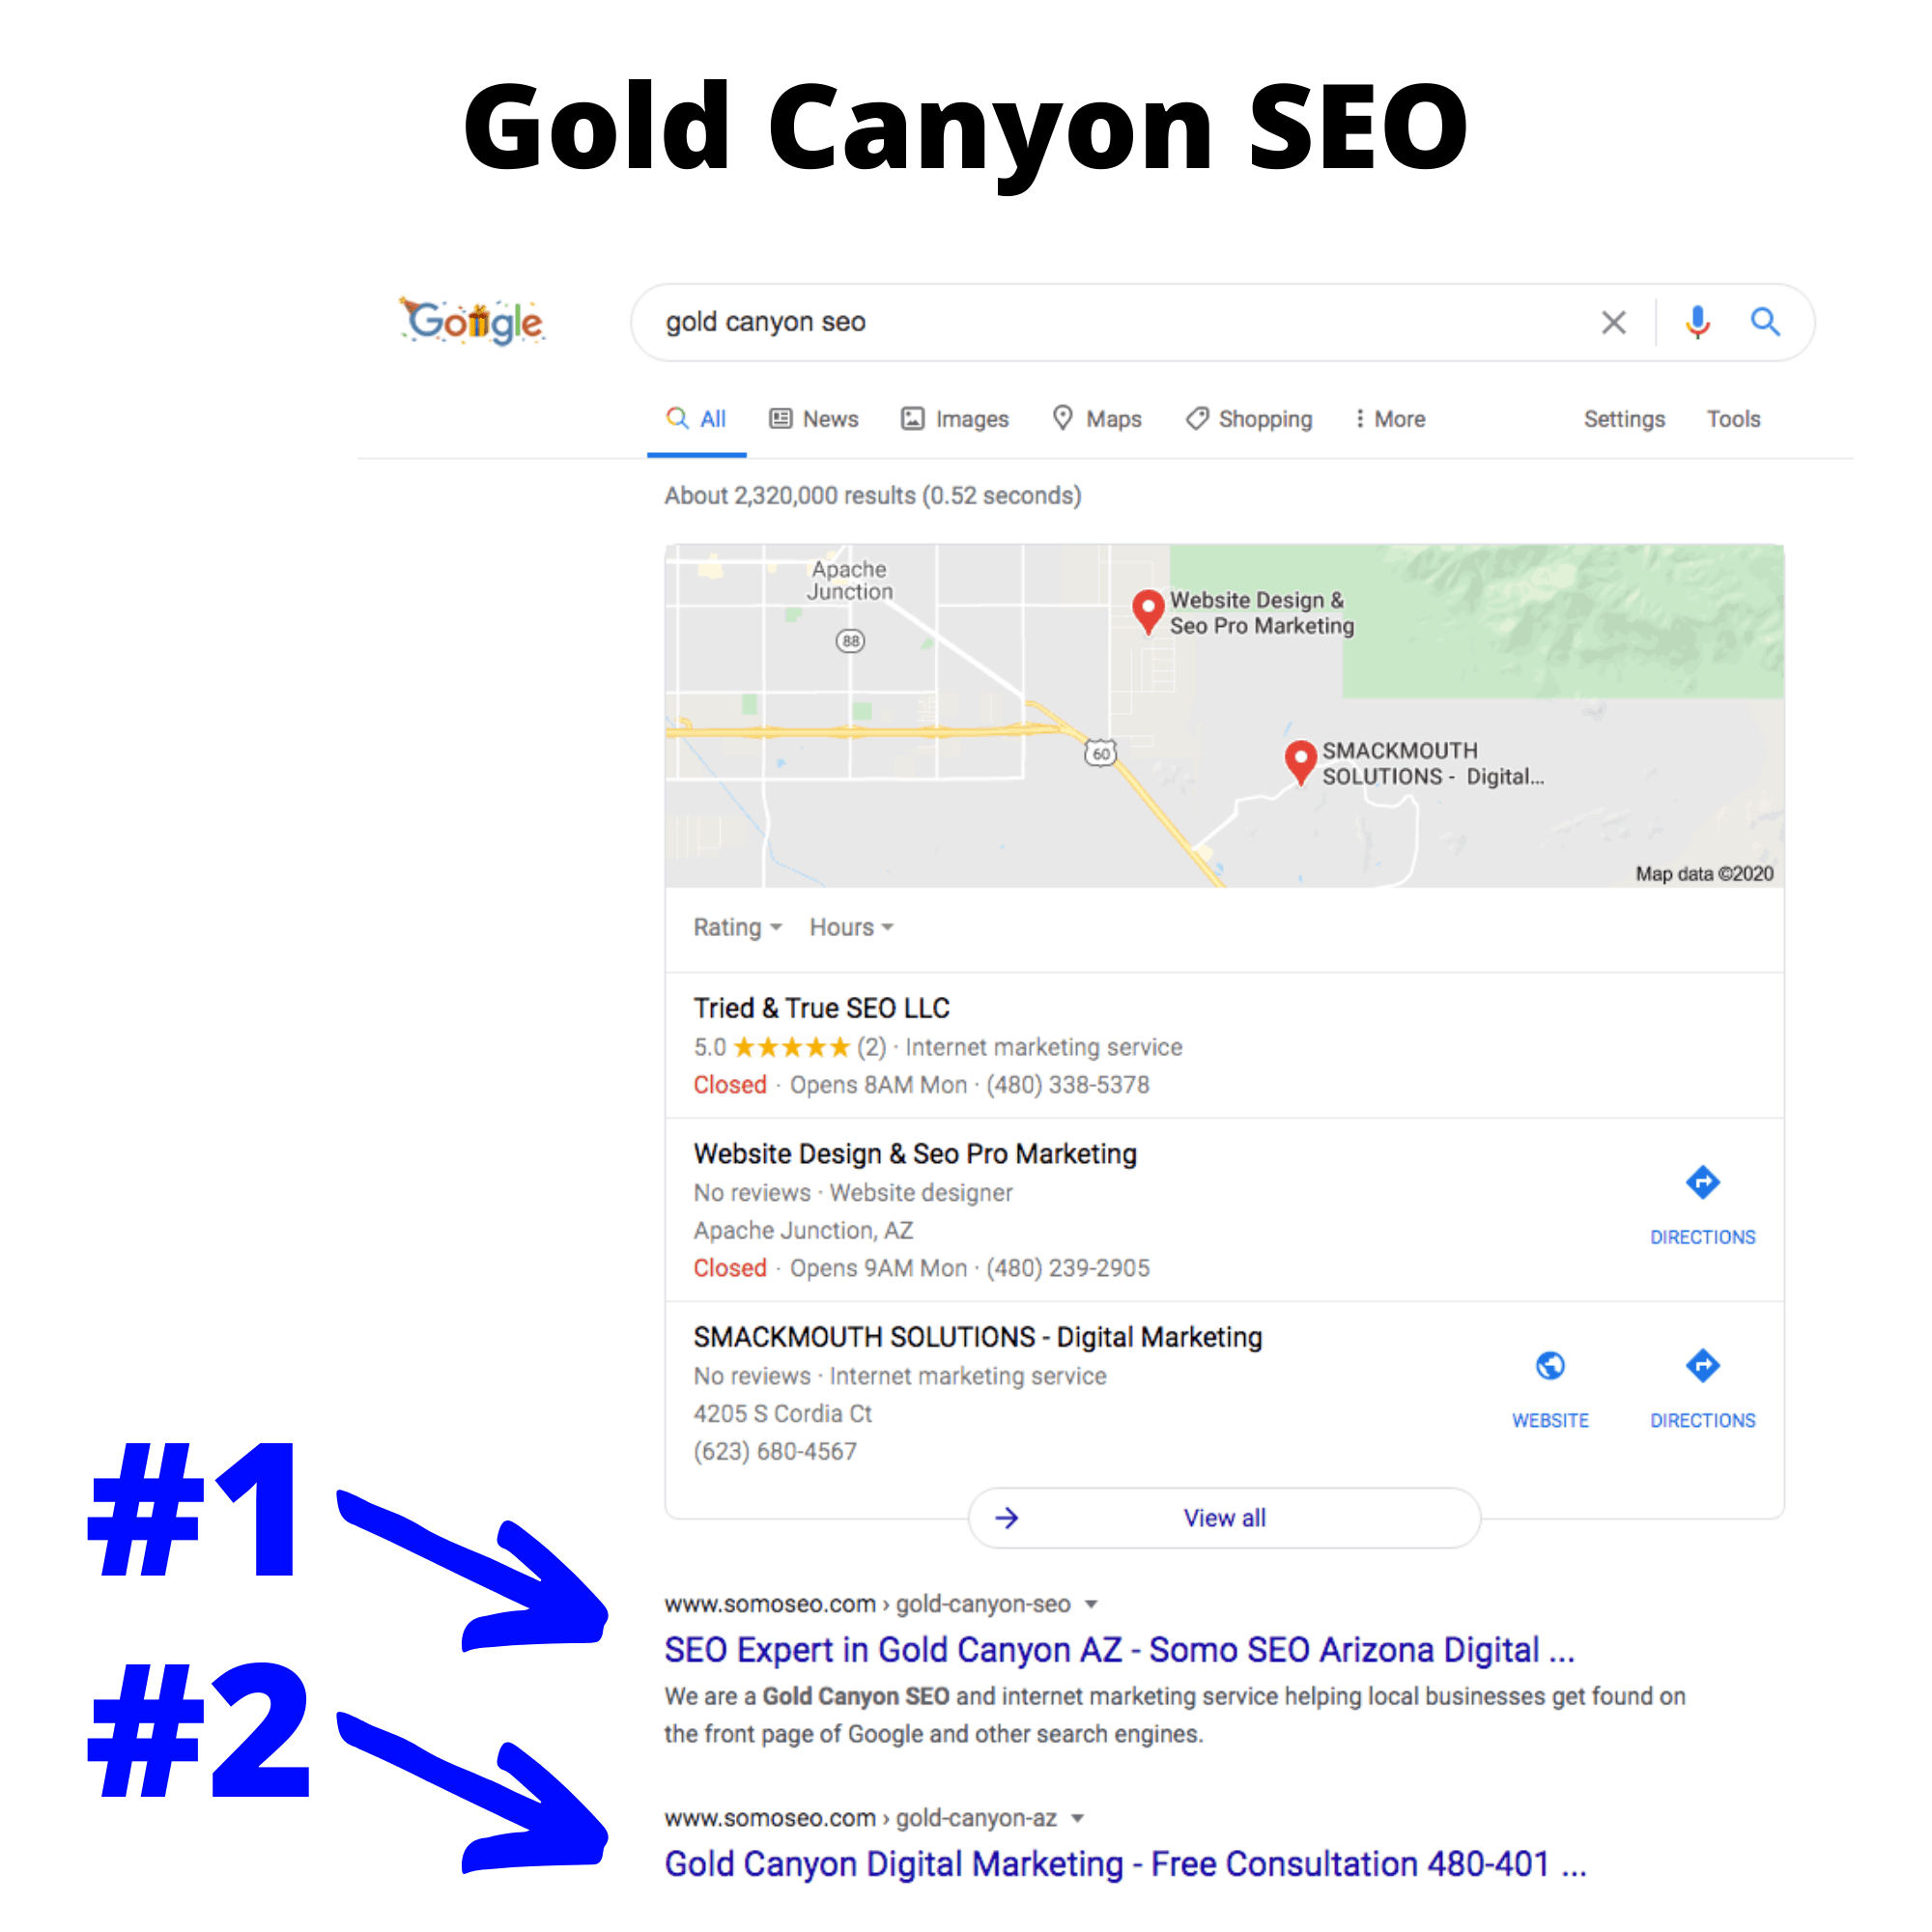 Gold Canyon SEO search results